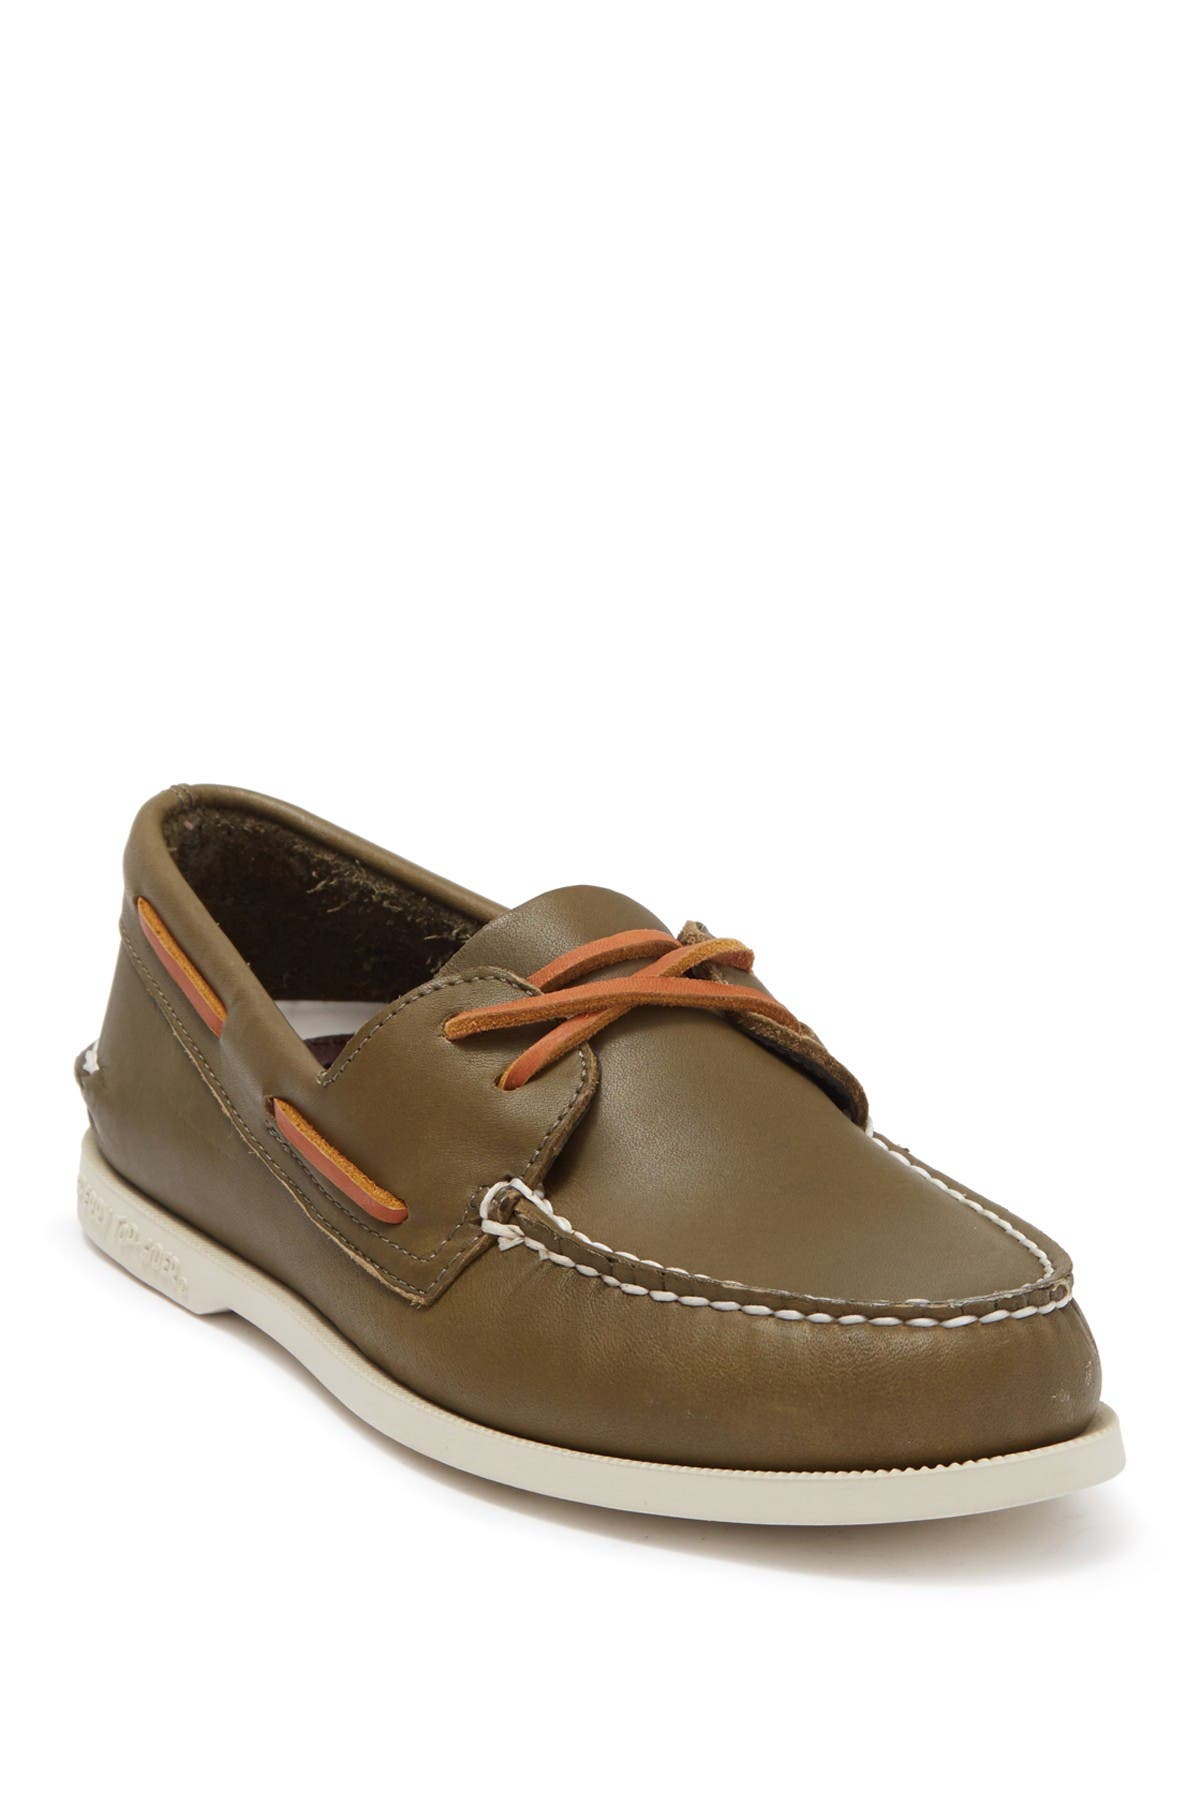 Image of Sperry Authentic Original 2-Eye Boat Shoe